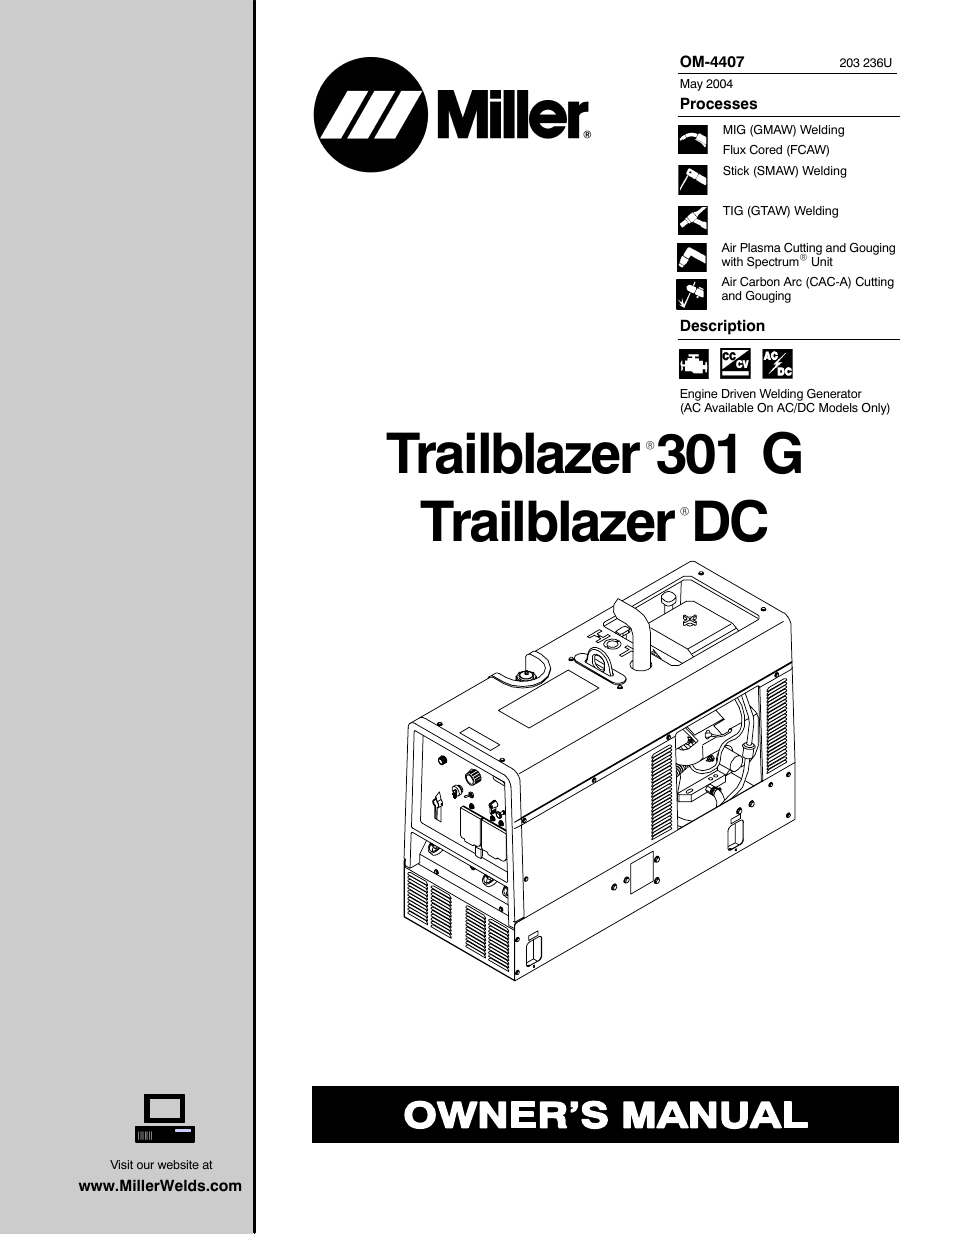 miller electric trailblazer dc user manual